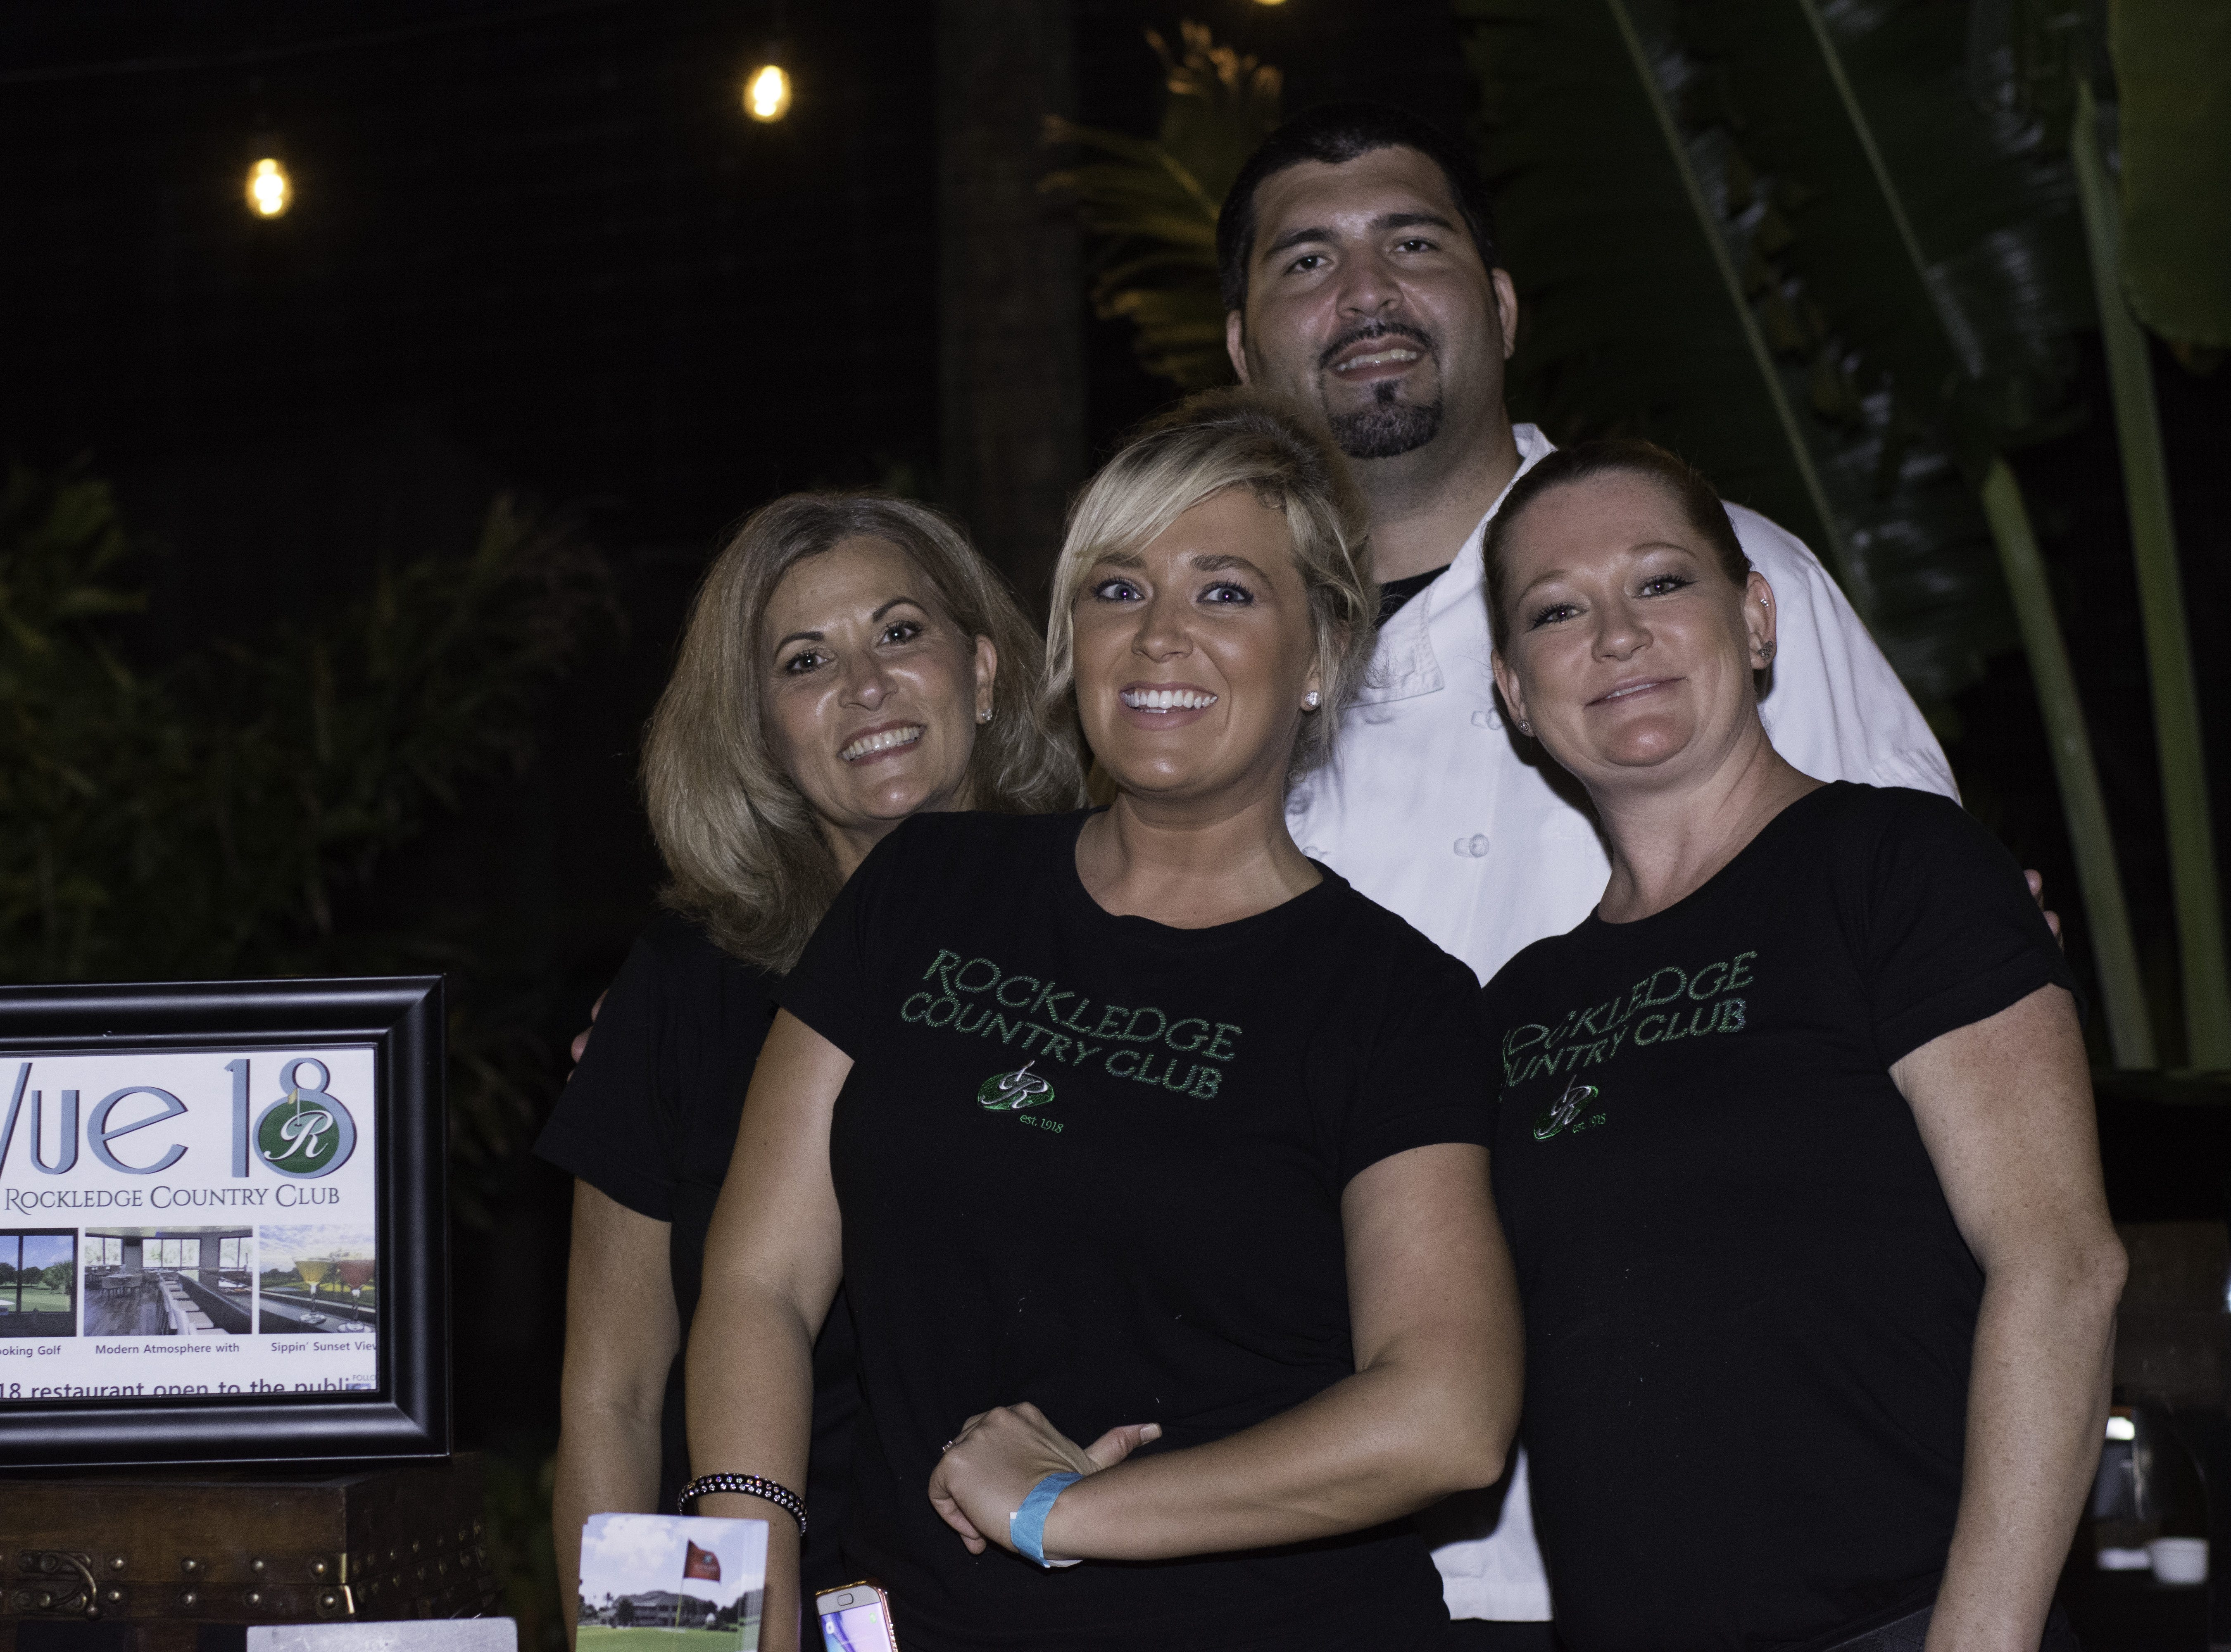 Employees from the Rockledge Country Club pose together at Jazzoo.